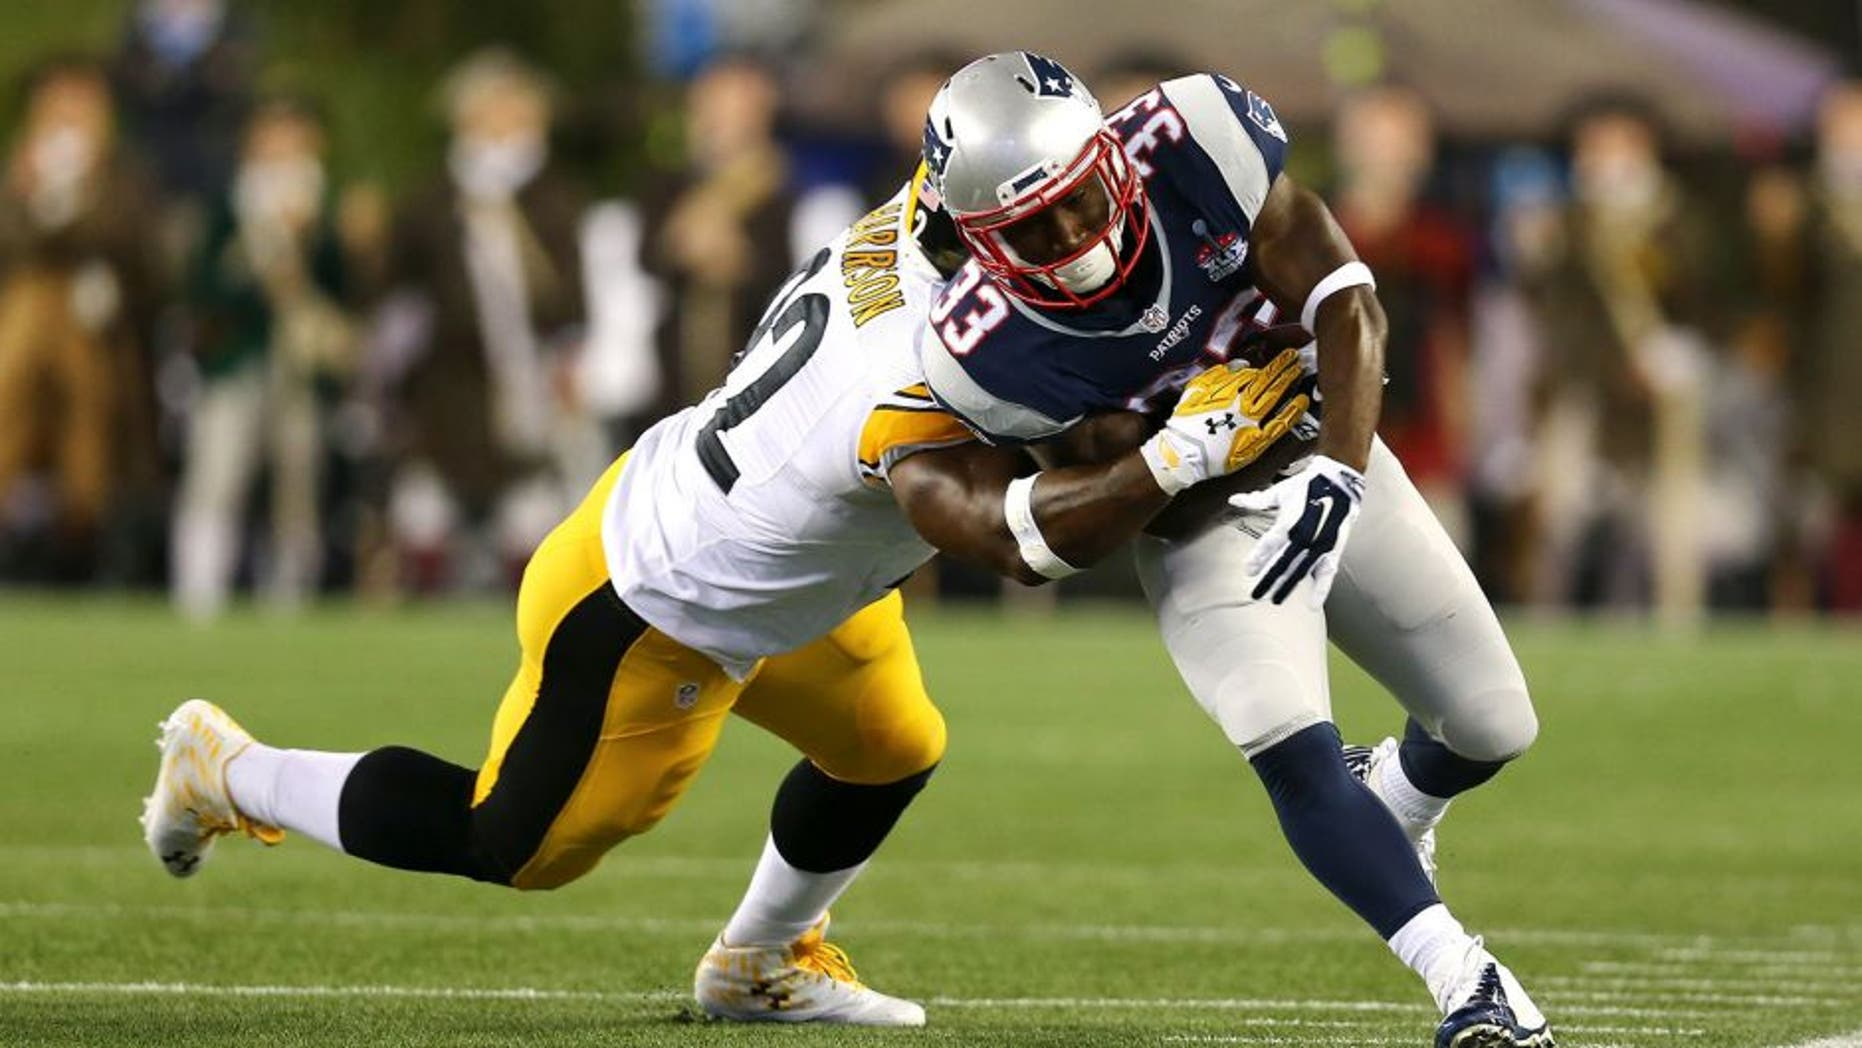 FOXBORO, MA - SEPTEMBER 10: Dion Lewis #33 of the New England Patriots runs with the ball against James Harrison #92 of the Pittsburgh Steelers at Gillette Stadium on September 10, 2015 in Foxboro, Massachusetts. (Photo by Jim Rogash/Getty Images)